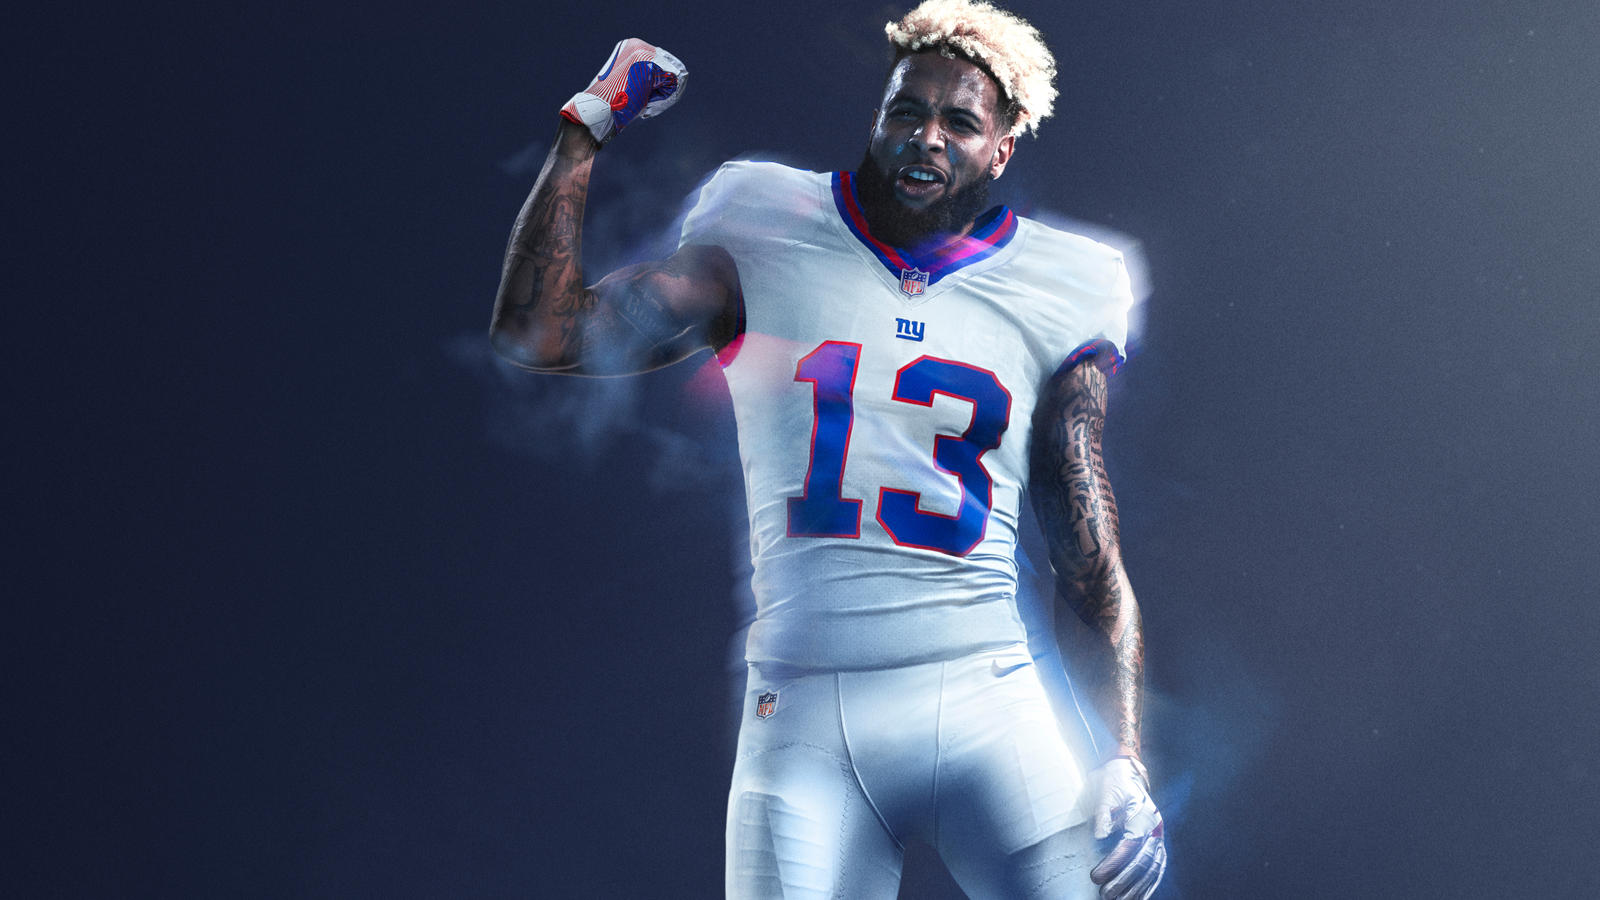 c5a6ee577 Nike and NFL Light Up Thursday Night Football - Nike News